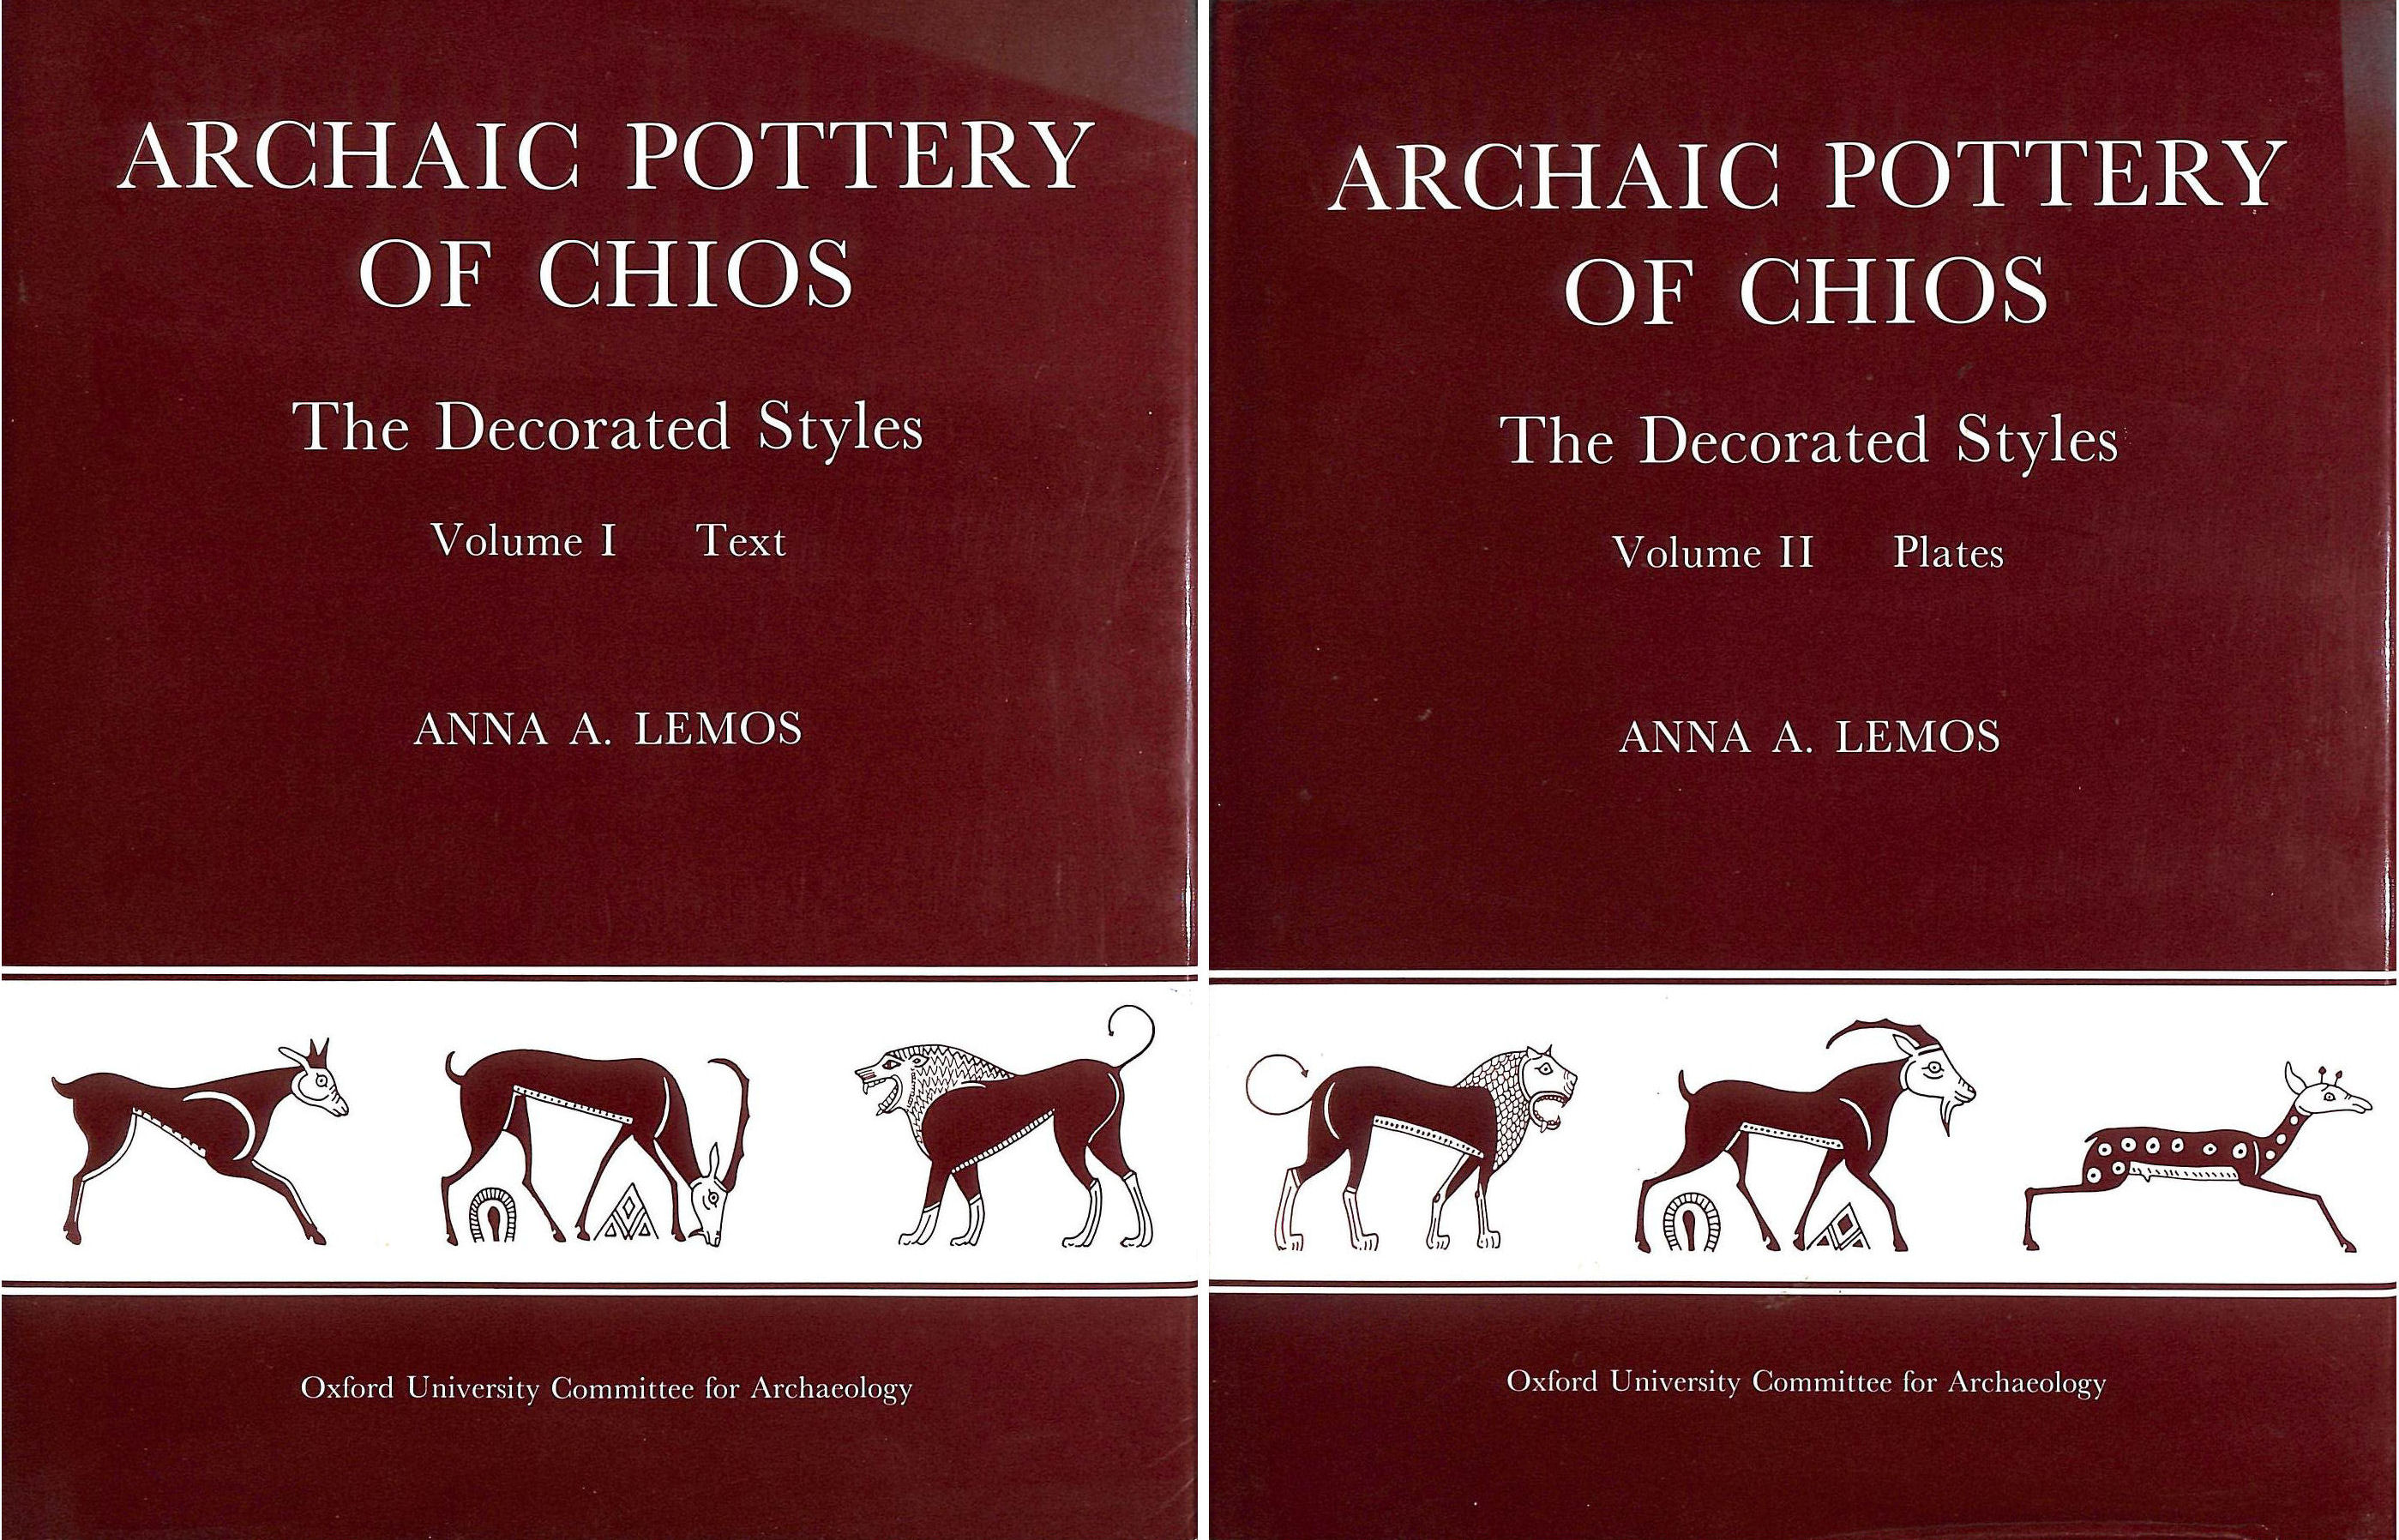 Image for Archaic Pottery of Chios (2 vols): The Decorated Styles 2 vols Text & Plates by Anna A Lemos (Oxford University Committee for Archaeology Monograph)